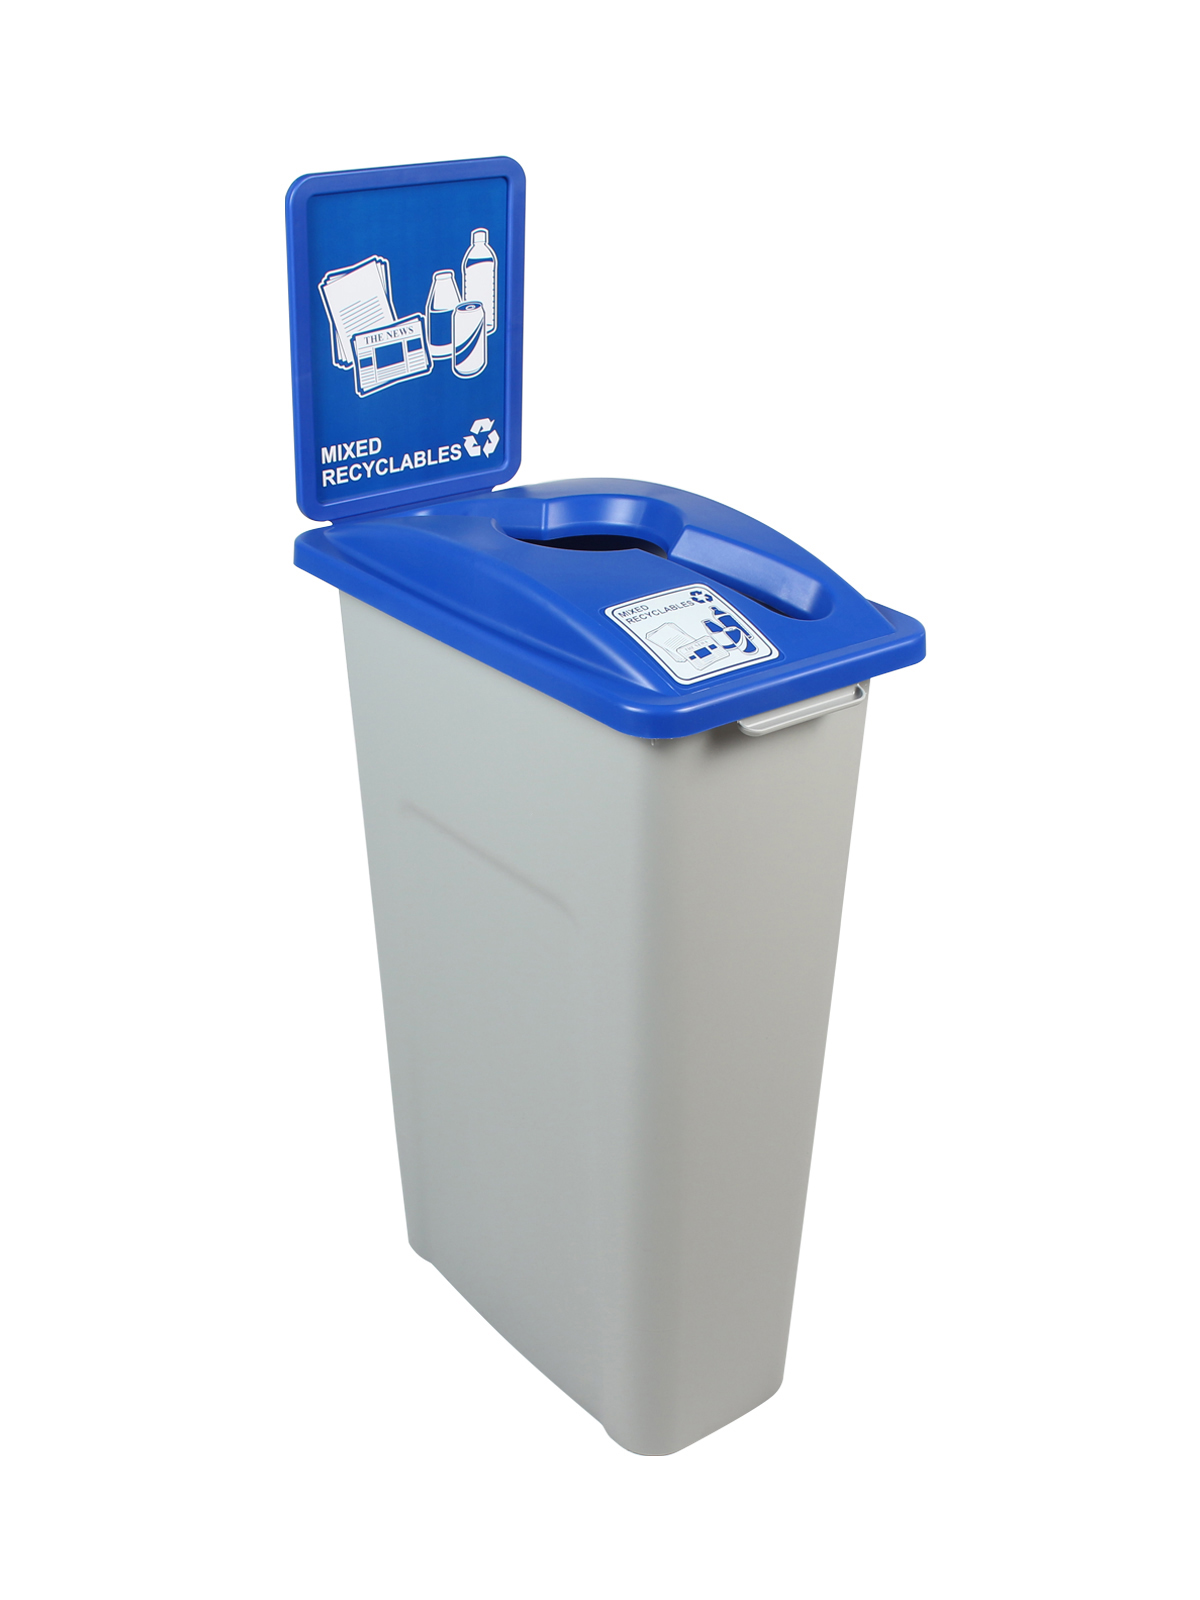 KIT WW 30 SINGLE - BDY/LID/SF - GRY/BLU MIXED RECYCLABLES